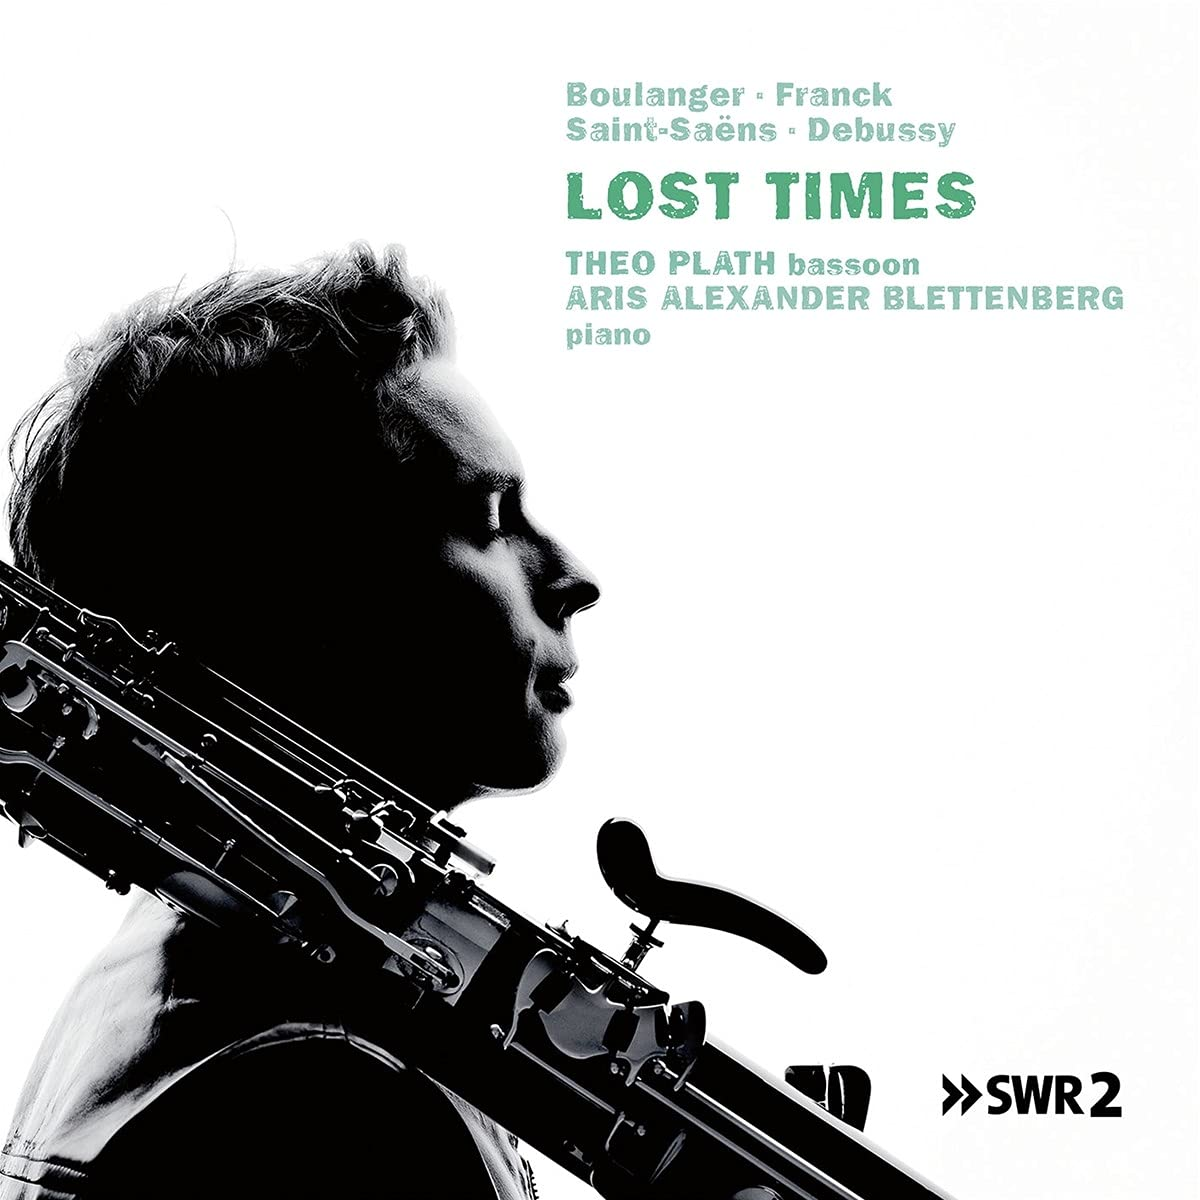 Lost Times, Music For Bassoon And Piano - Theo Plath & Aris Alexander Blettenberg